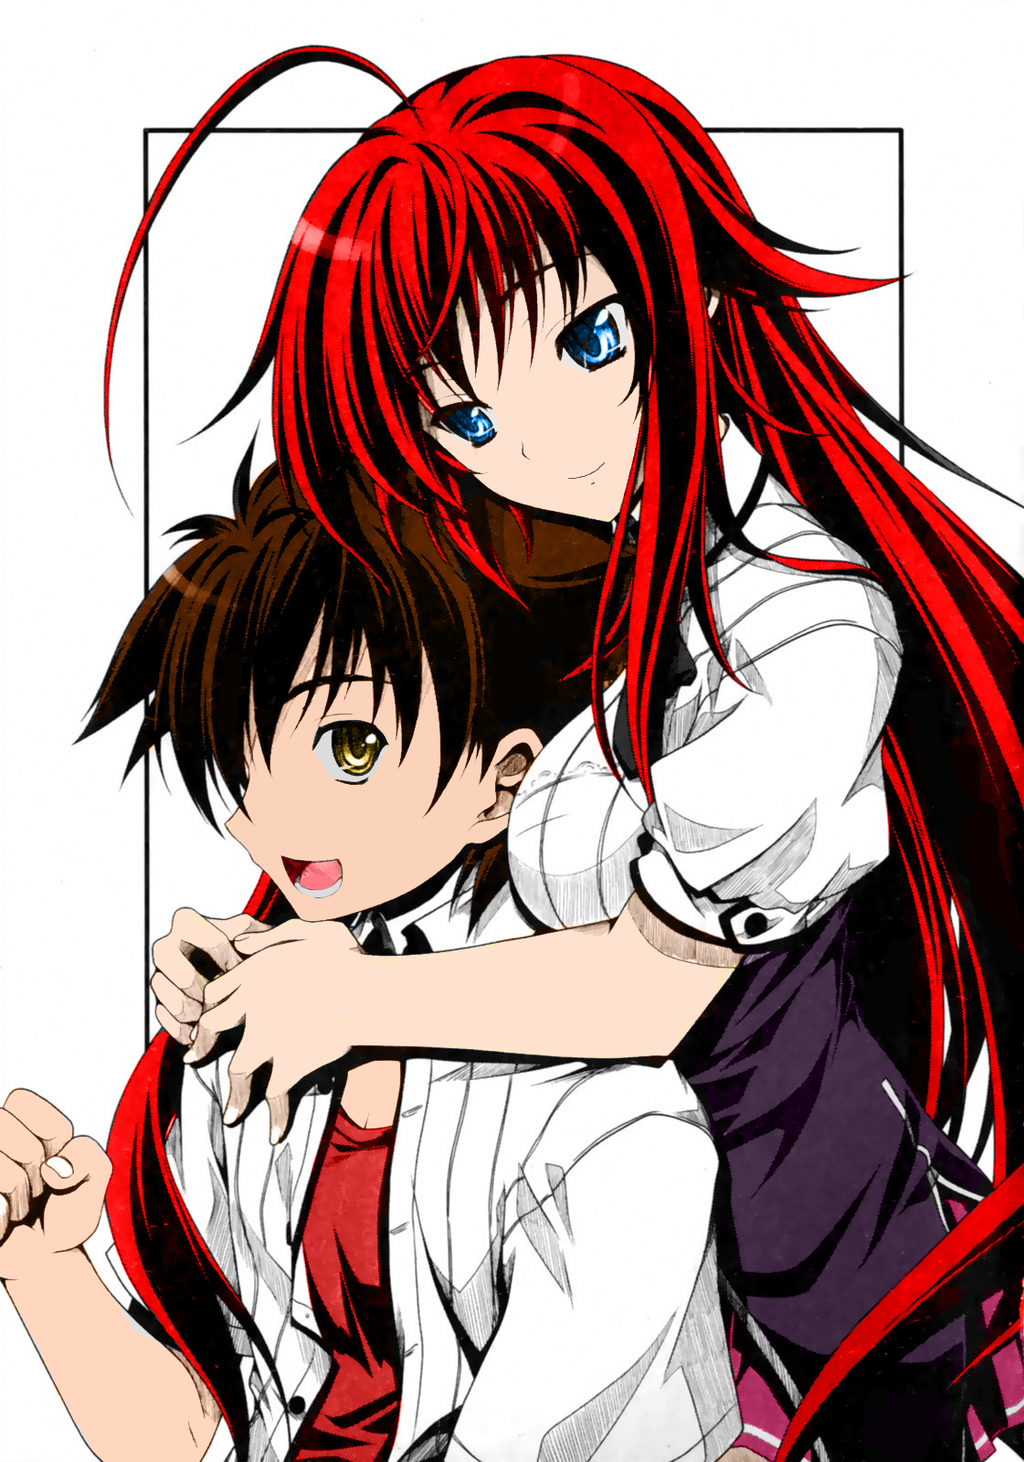 Rias and Issei from High School DxD by fatalgod23 deviantart